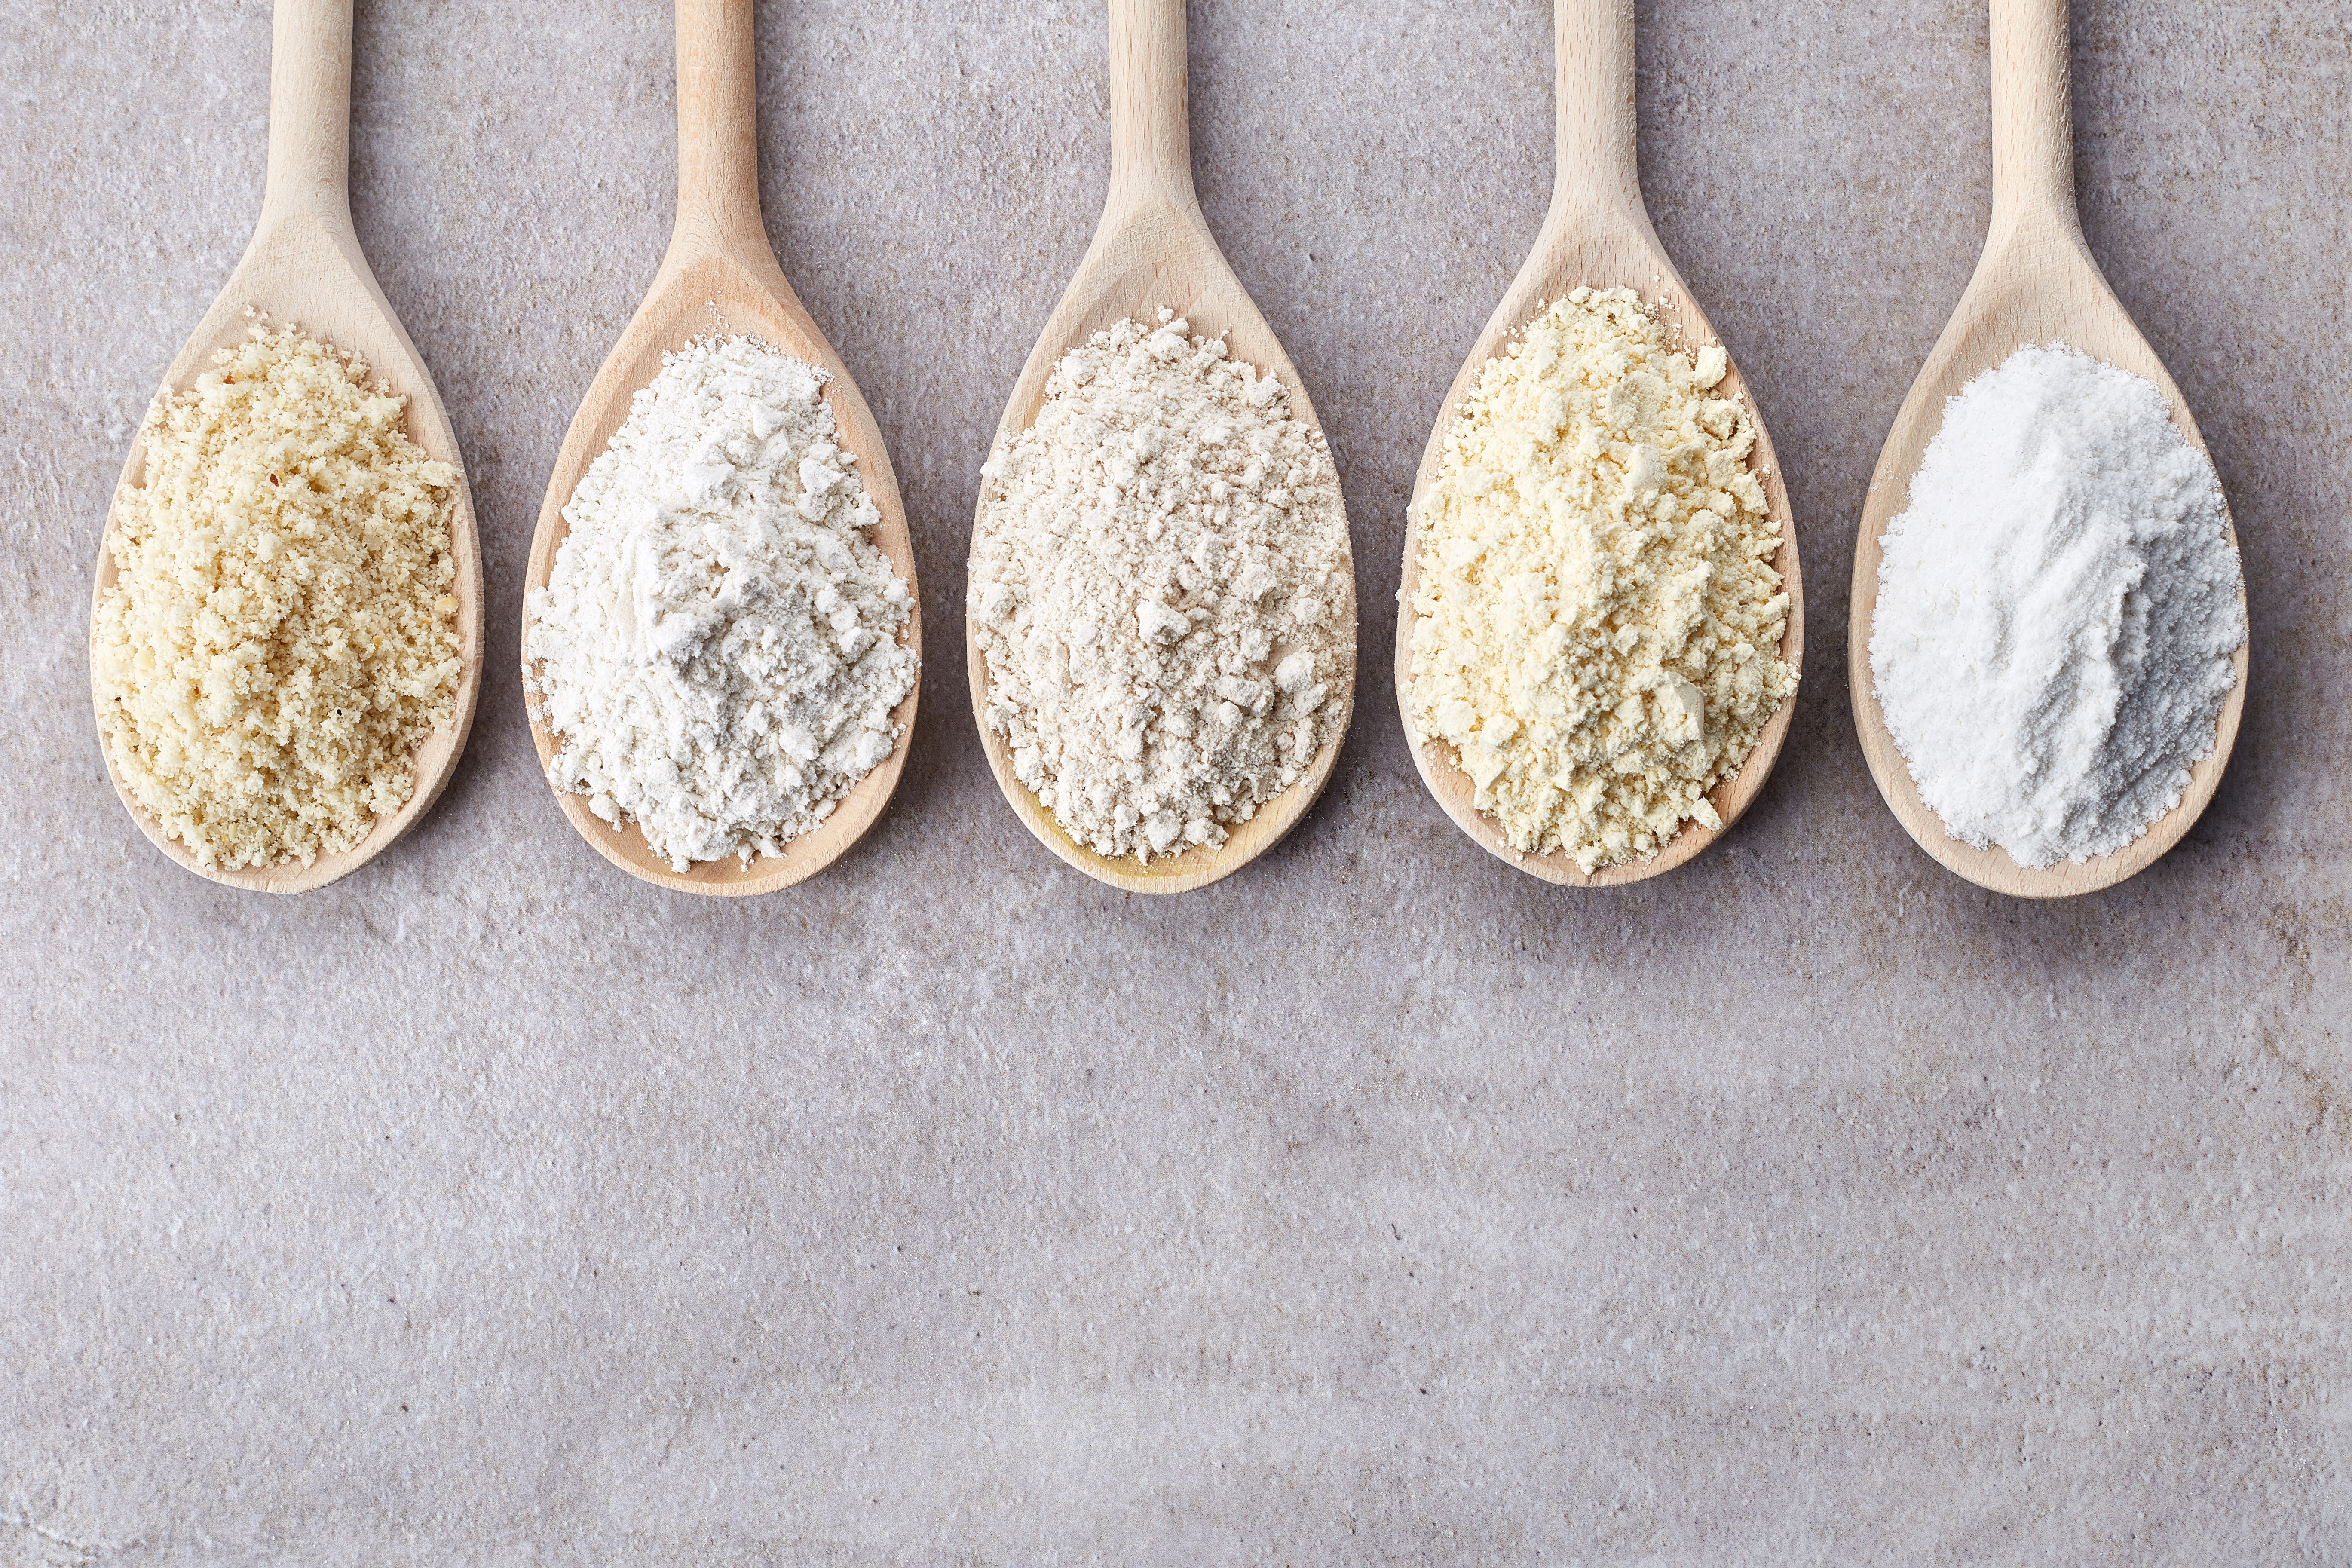 5 Grain Free Flours You Will Love